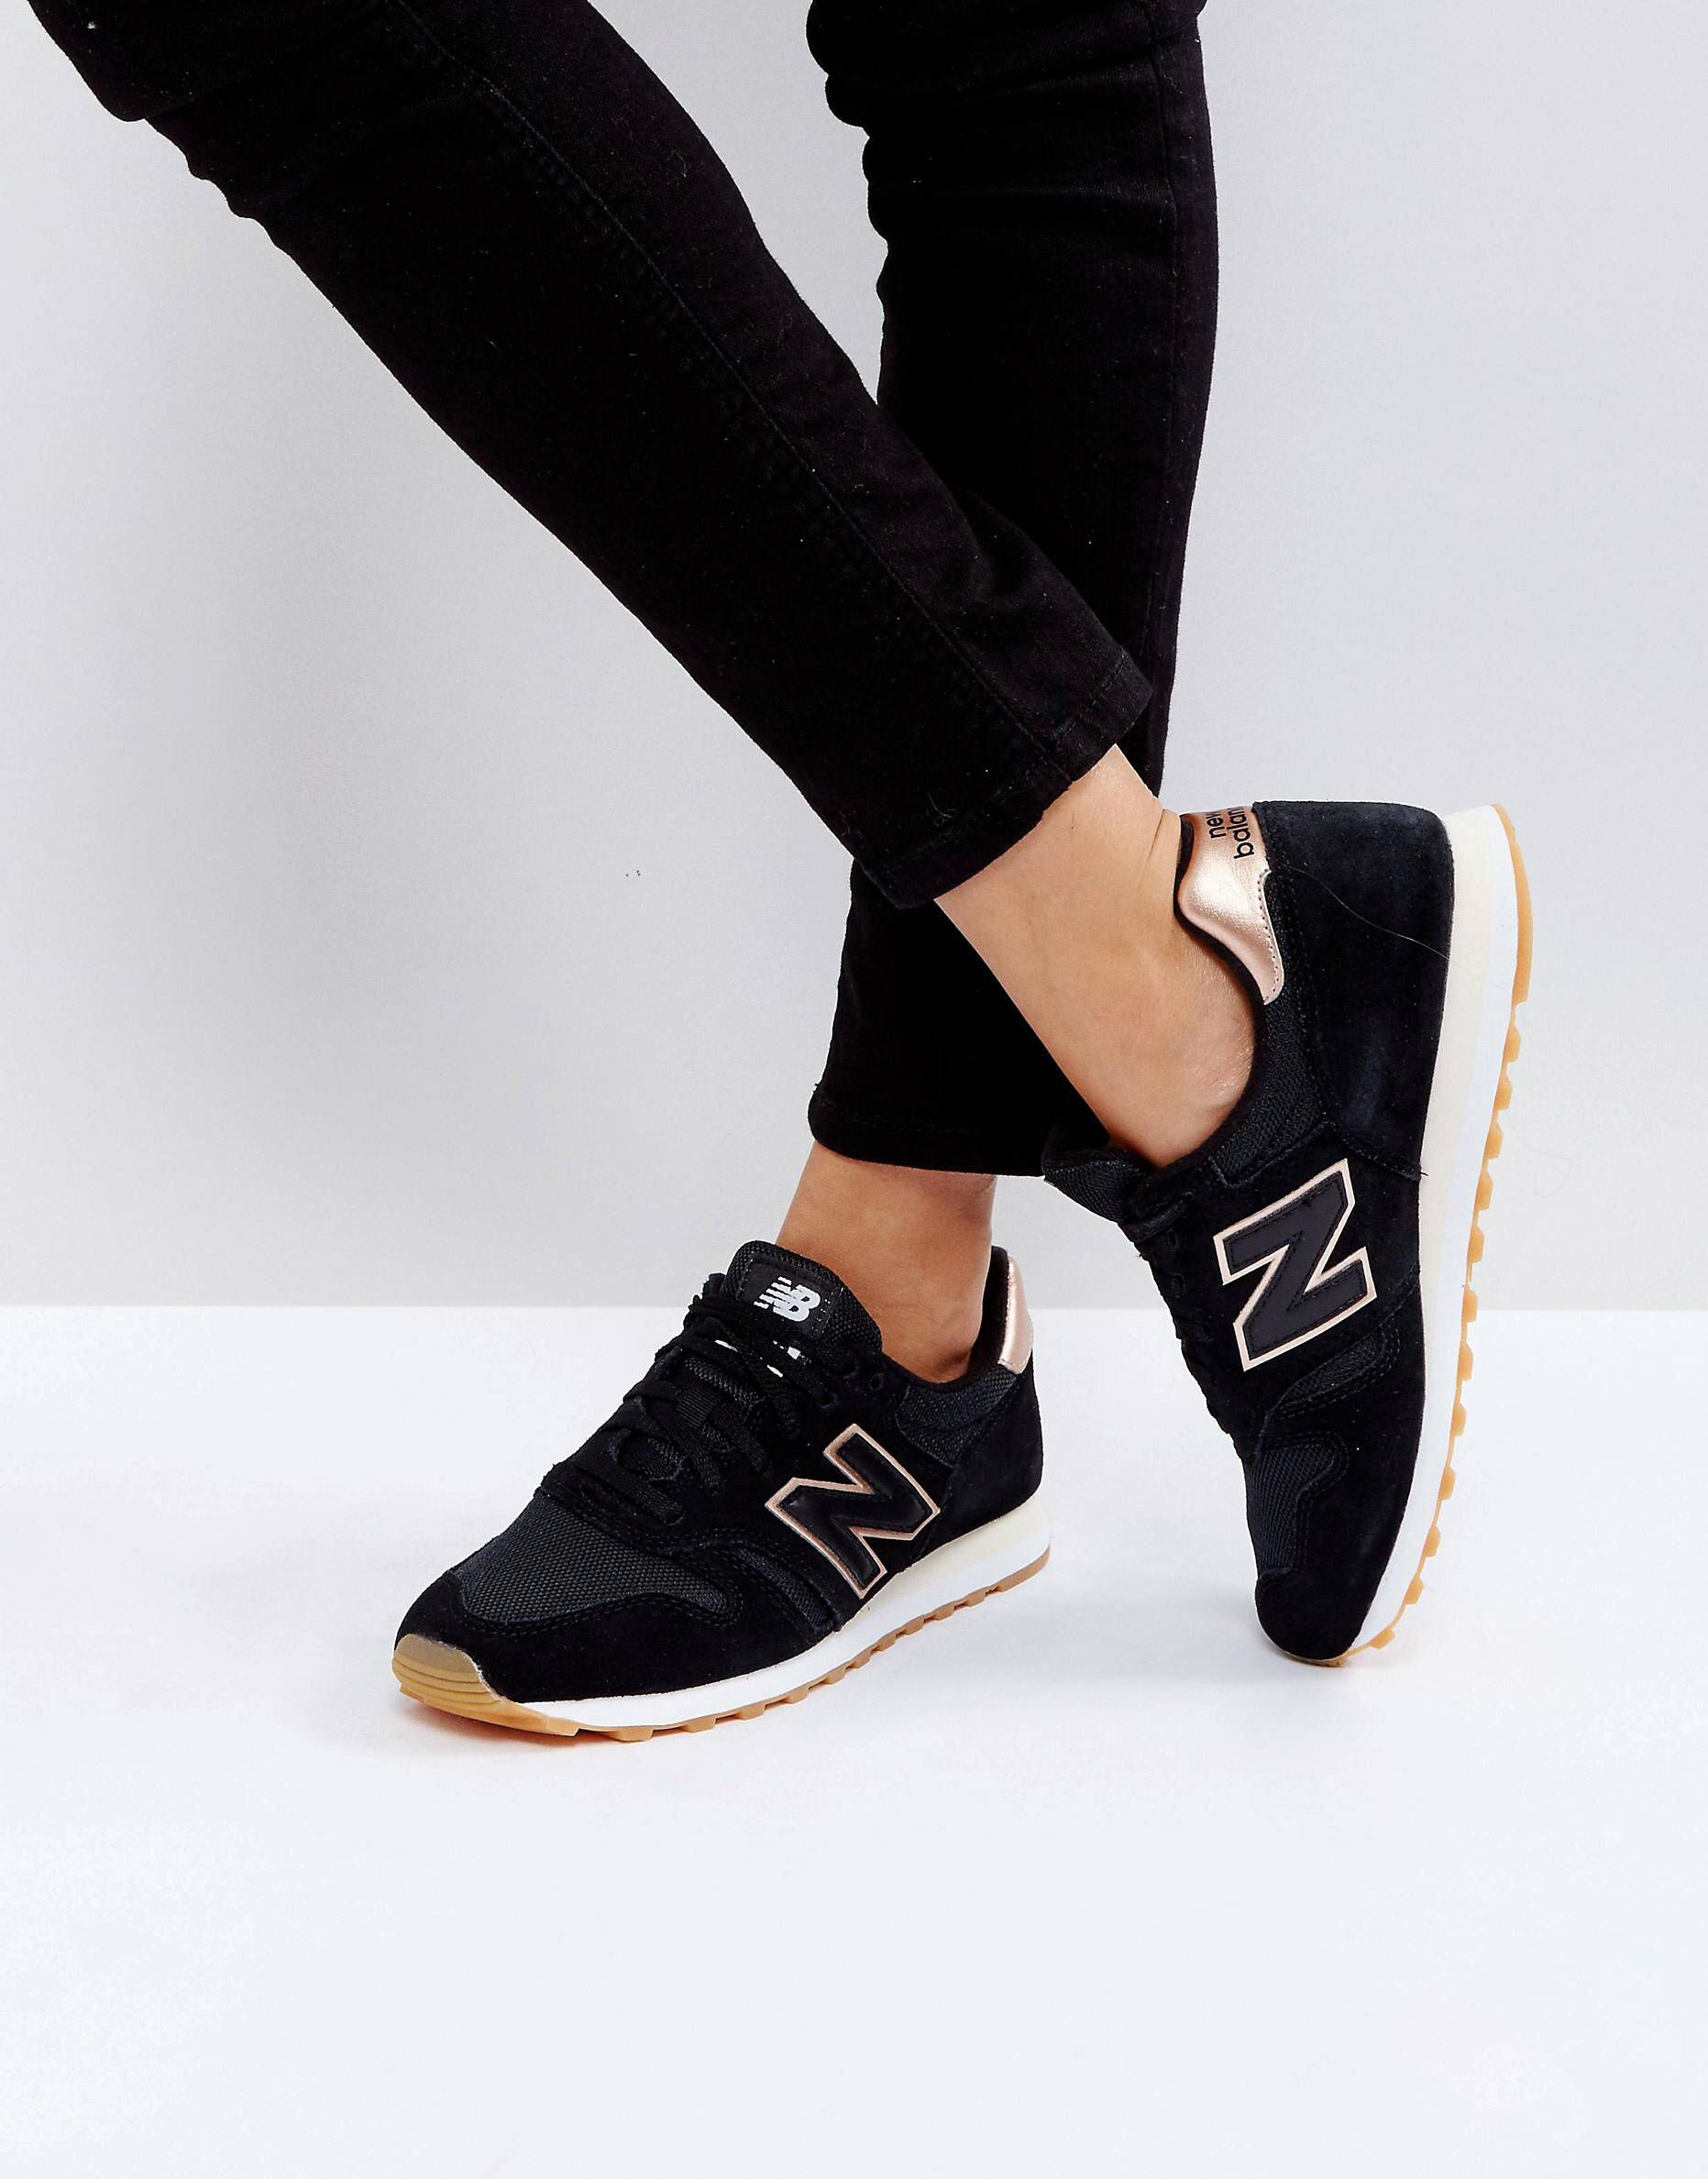 new balance 373 womens black rose gold, OFF 77%,Welcome to buy!